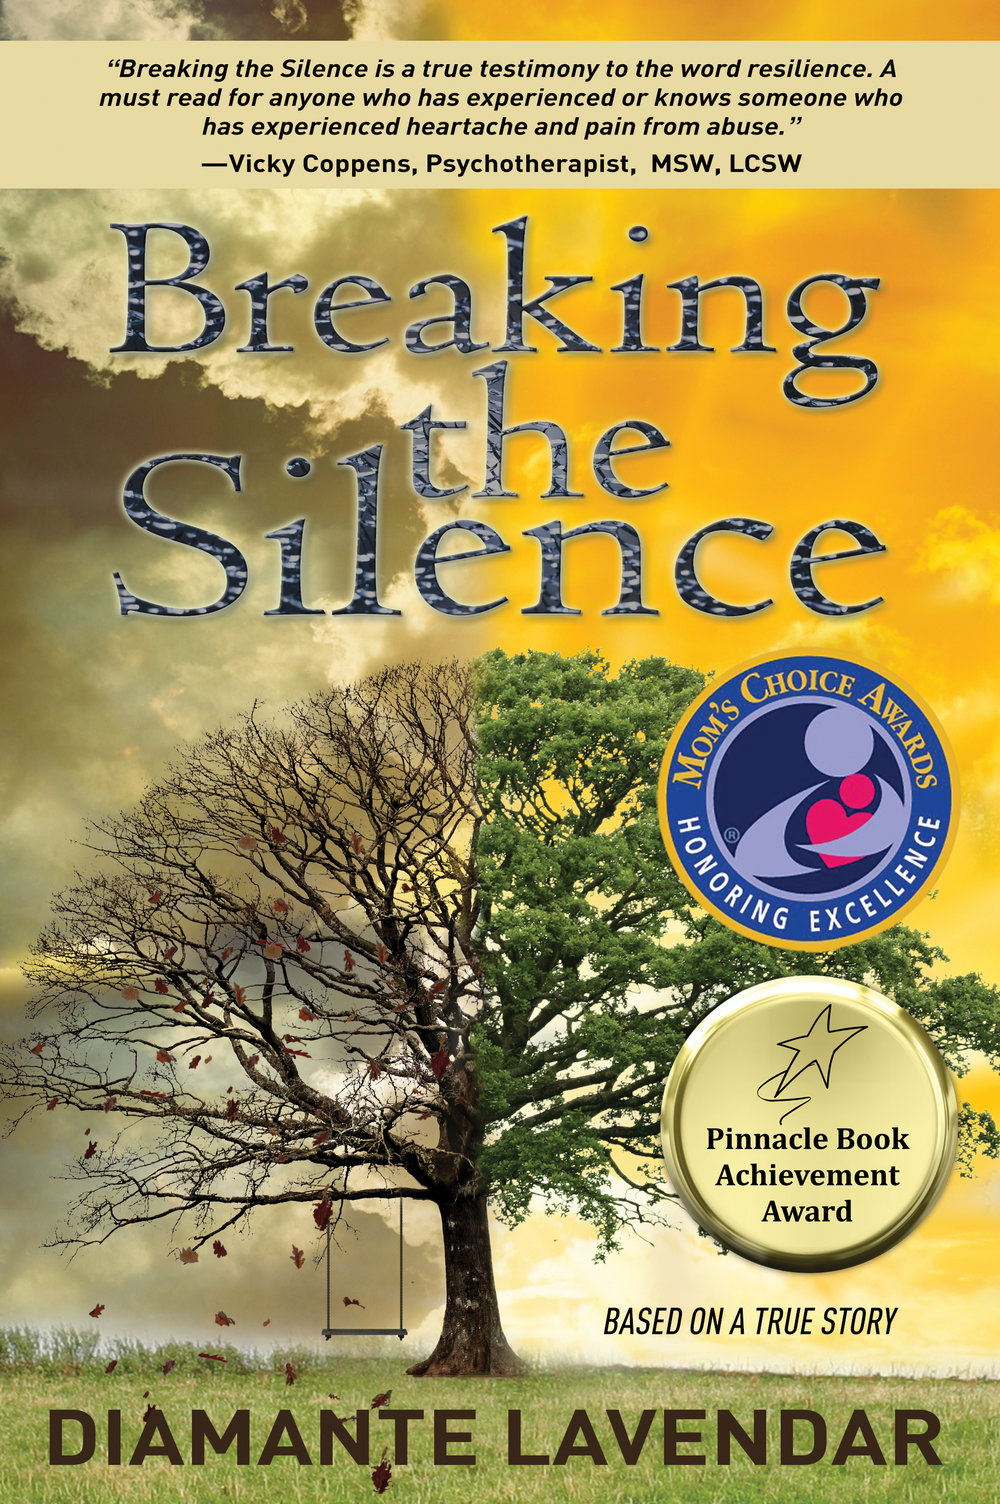 Breaking the Silence - Winner of Mom's Choice Gold Medal in the category of Inspirational Fiction!Winner of the Pinnacle Book Achievement Award in Inspirational Fiction and winner of Readers' Favorite 5 Star Review Medal!New winner of 2016 Director's Choice Winner Outstanding Human Relations Courage Indie Book and 2016 Silver Winner Realistic Human Relations Fiction Book!Winner of the 2017 Gold Medal for Inspirational Fiction from Reader's Favorite!